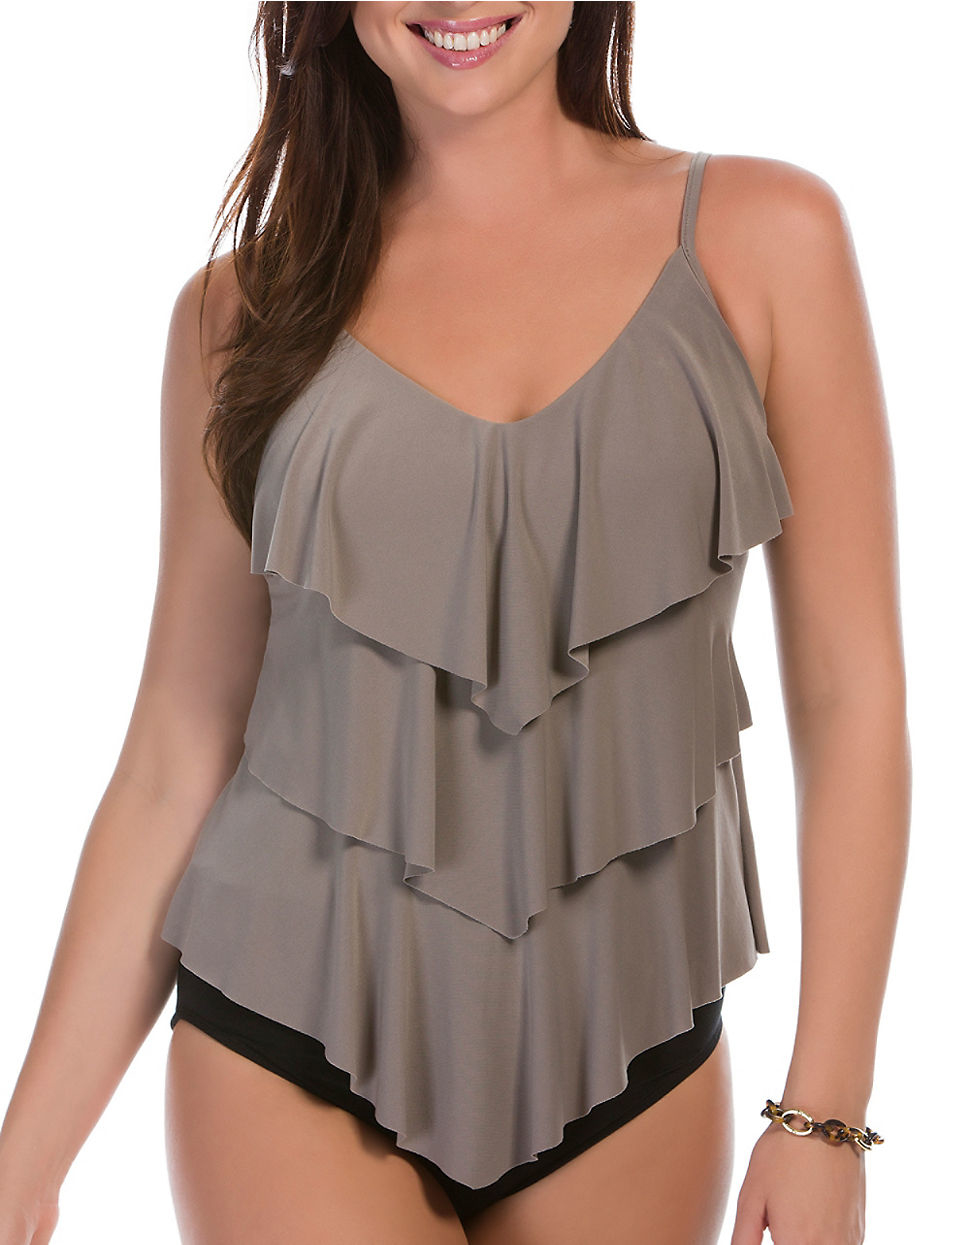 2454a1f8eb6c7 Miraclesuit Solids Rita Tiered Tankini Top in Gray - Lyst